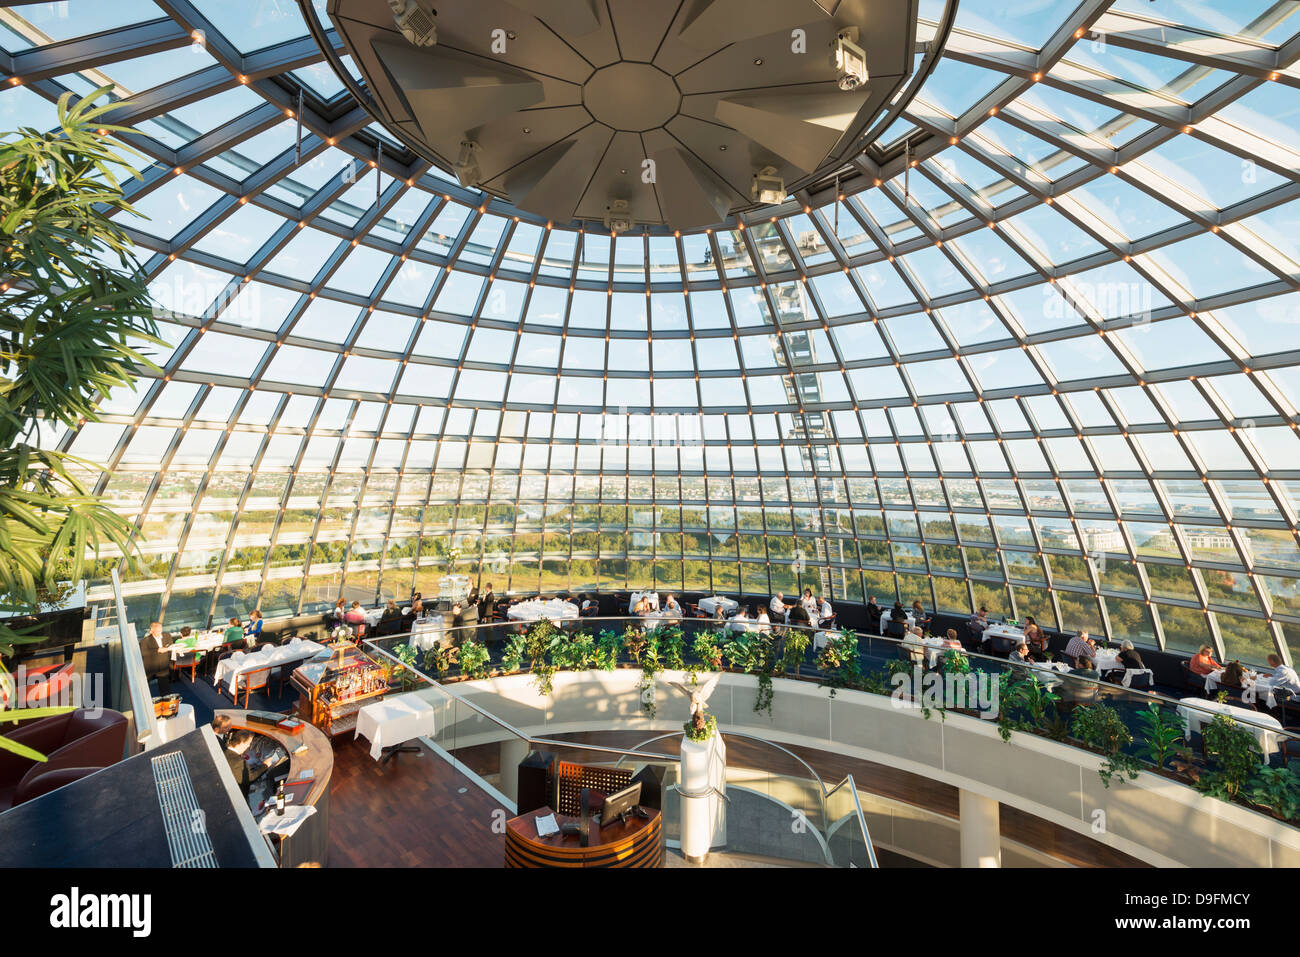 Perlan, The Pearl restaurant, Reykjavik, Iceland, Polar Regions - Stock Image